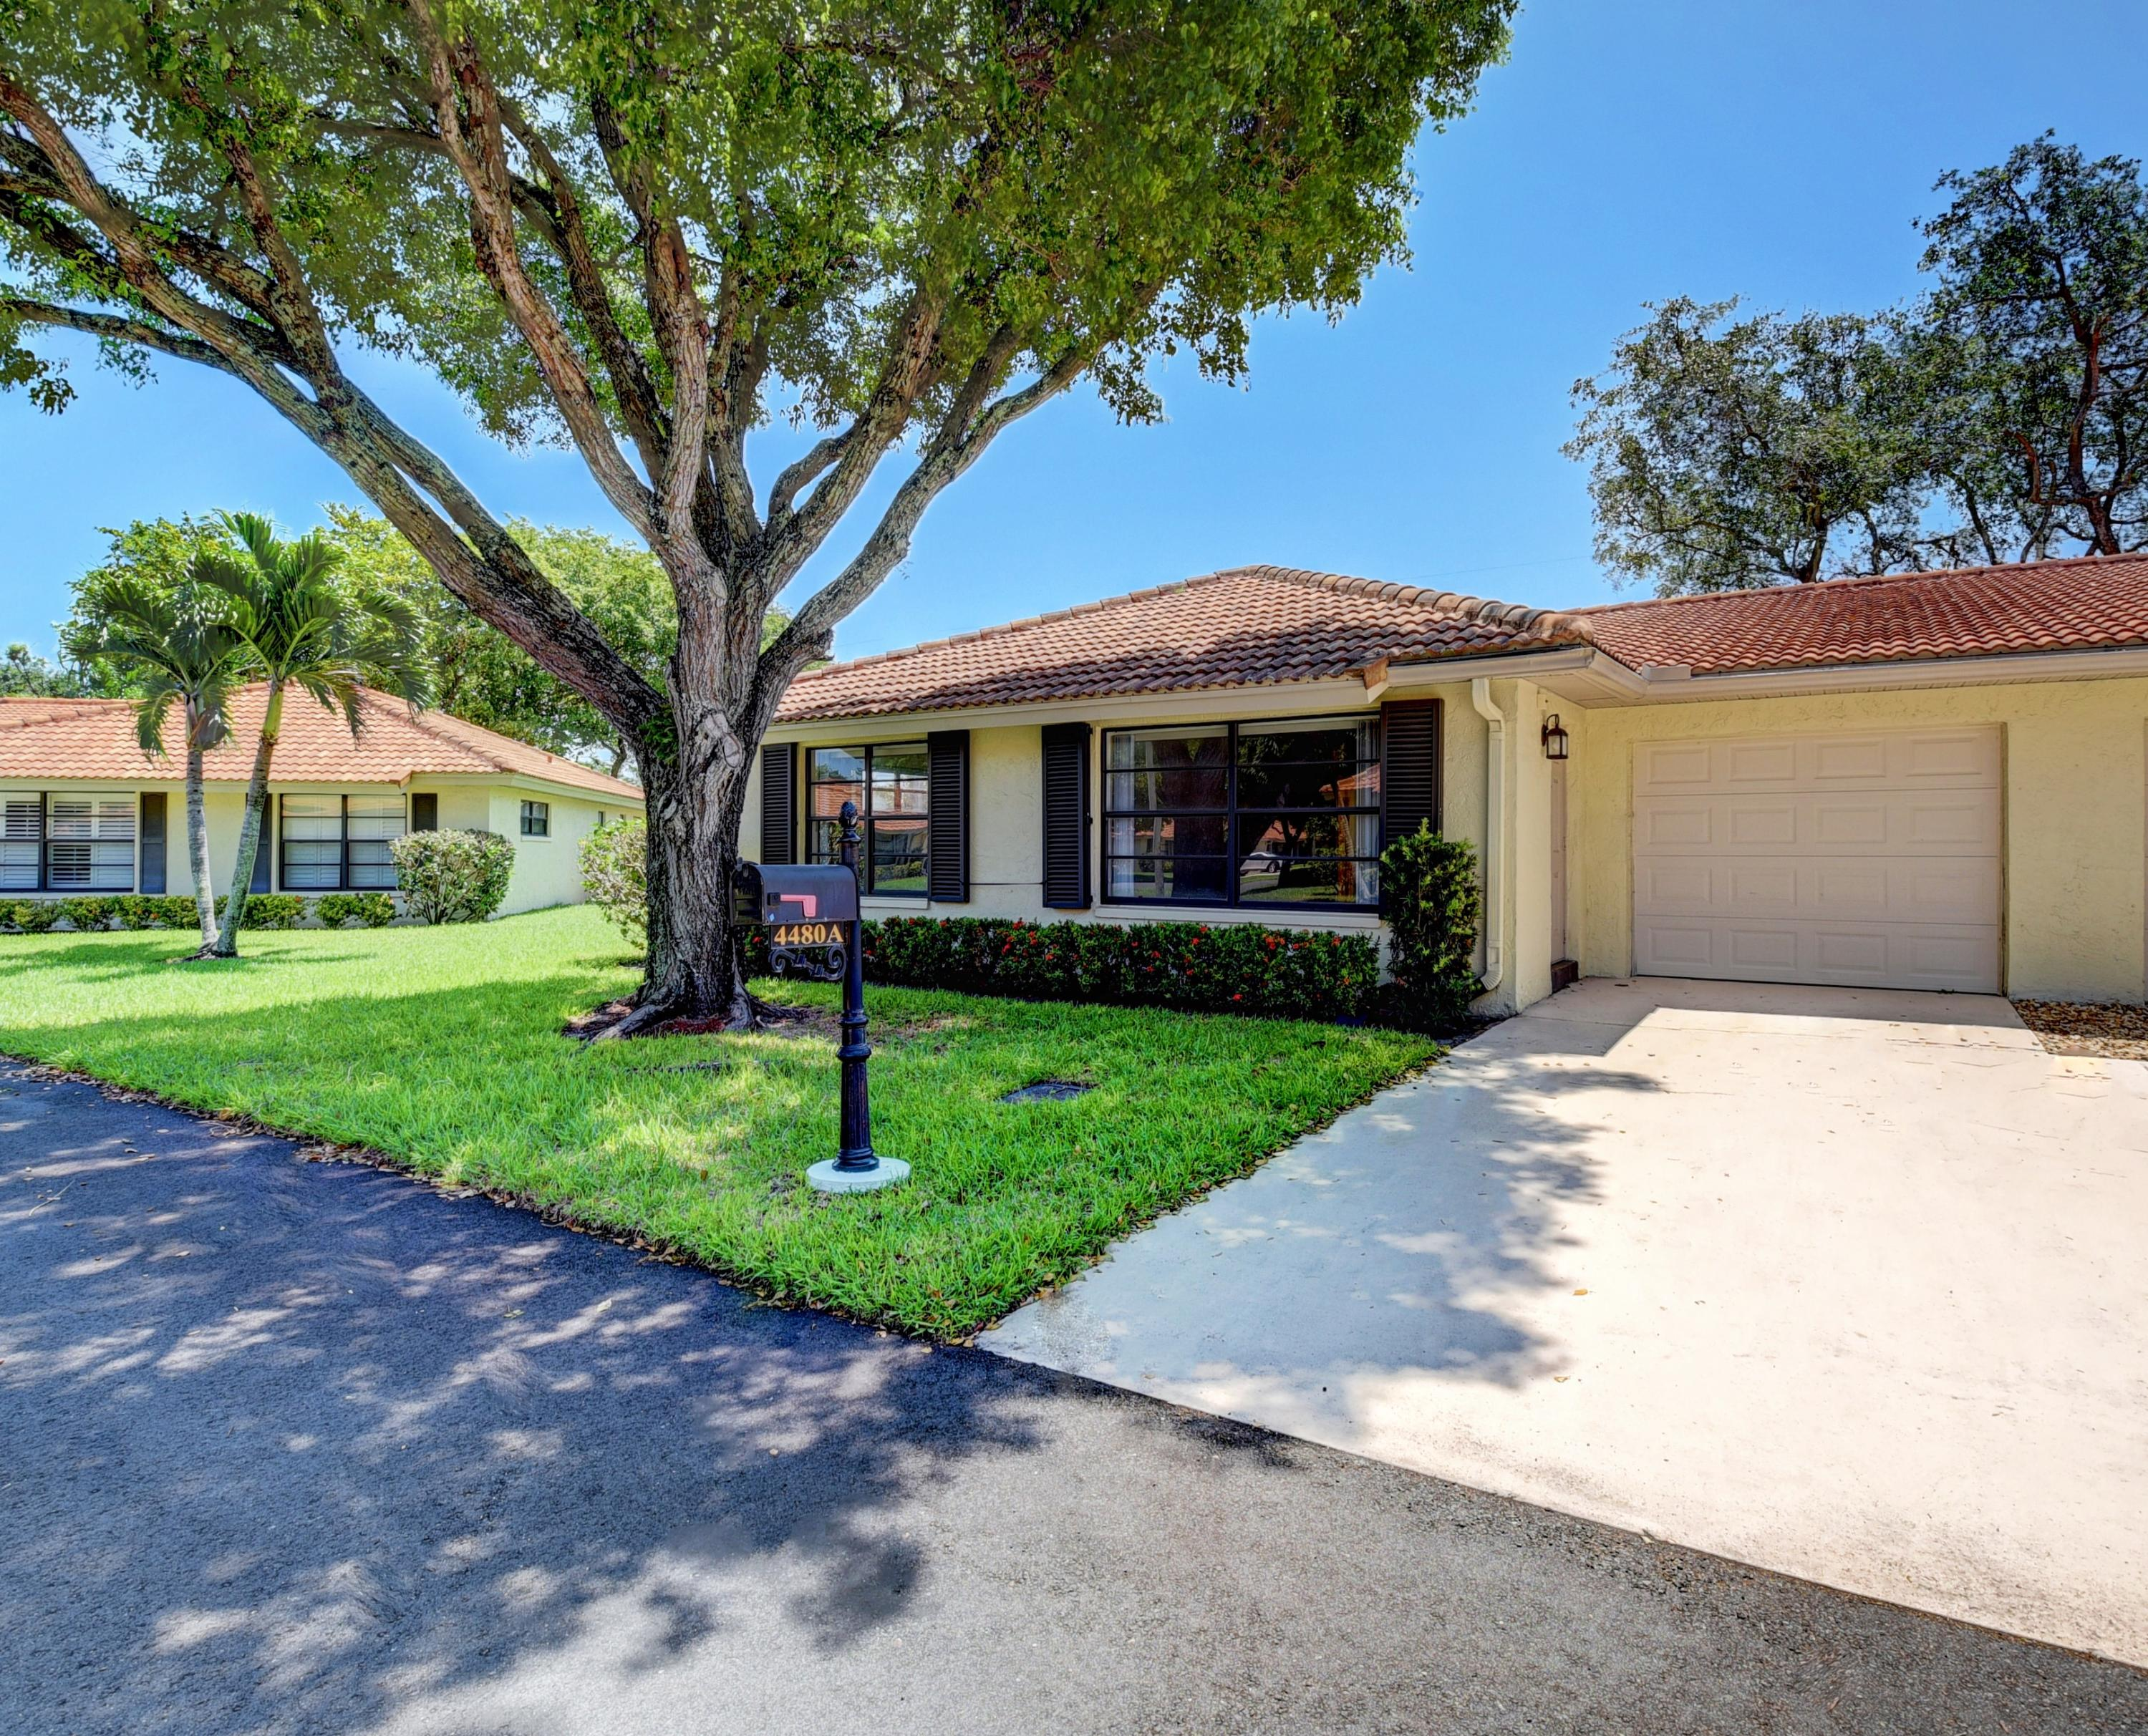 Home for sale in Bent Tree West Boynton Beach Florida